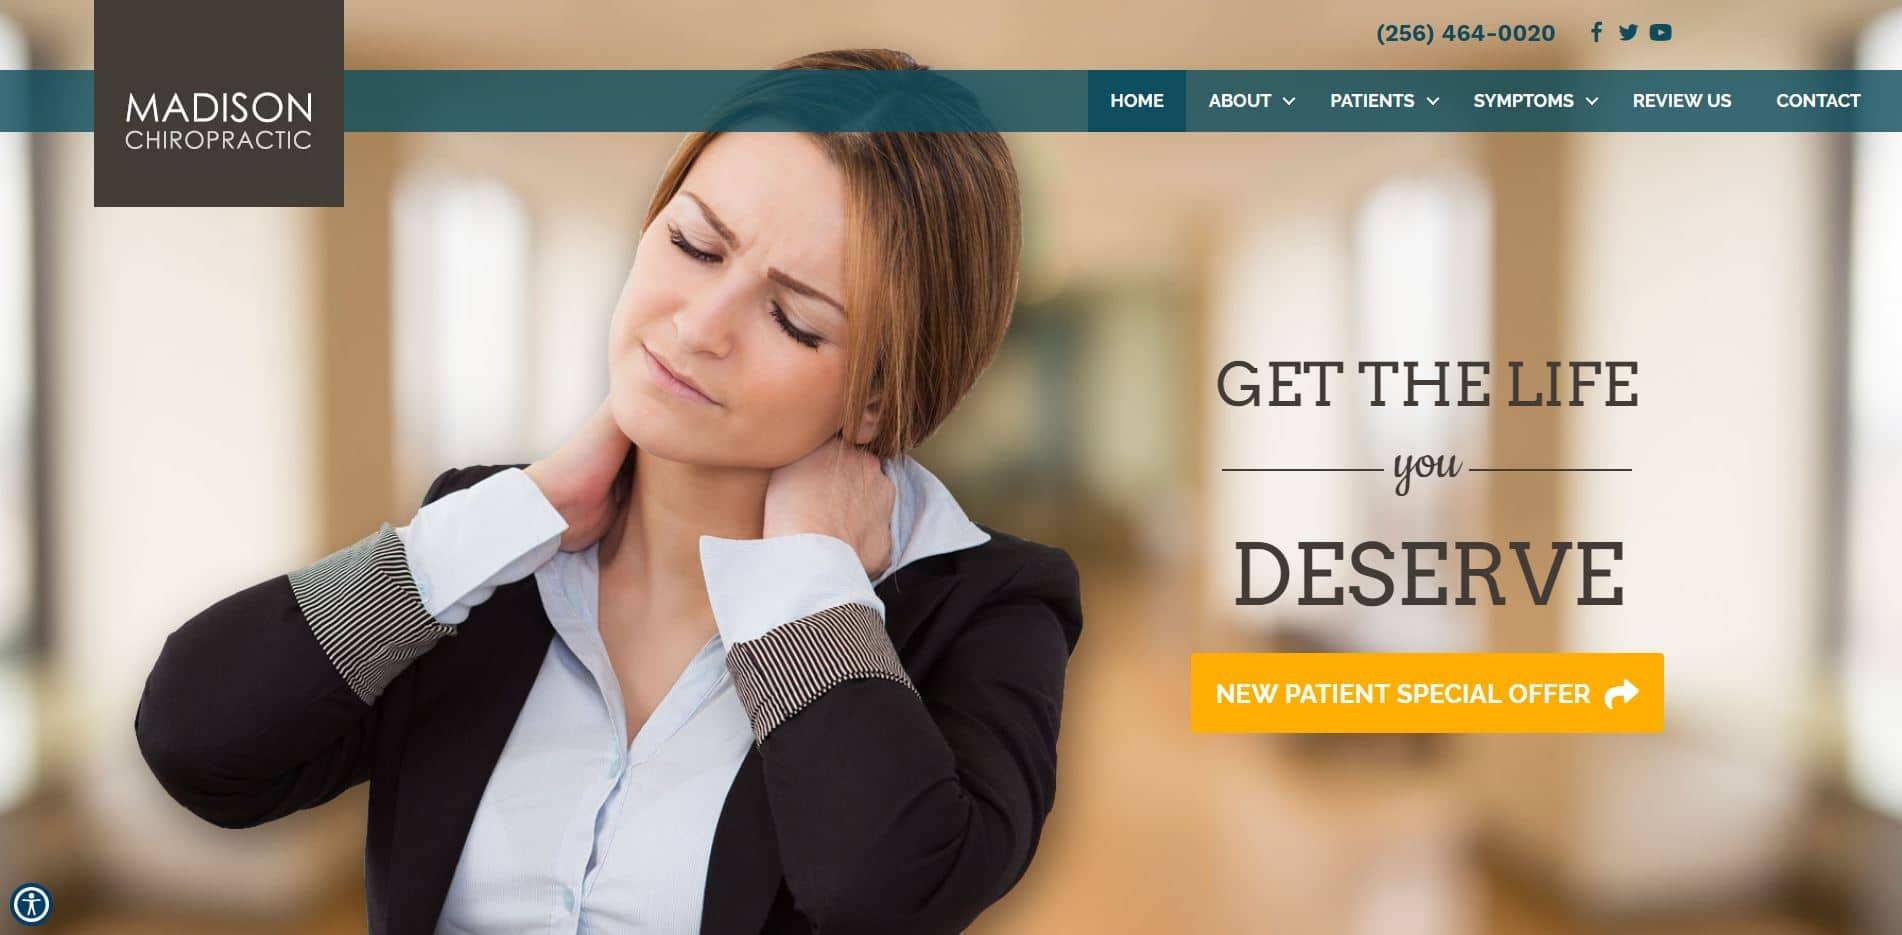 Chiropractor in Madison